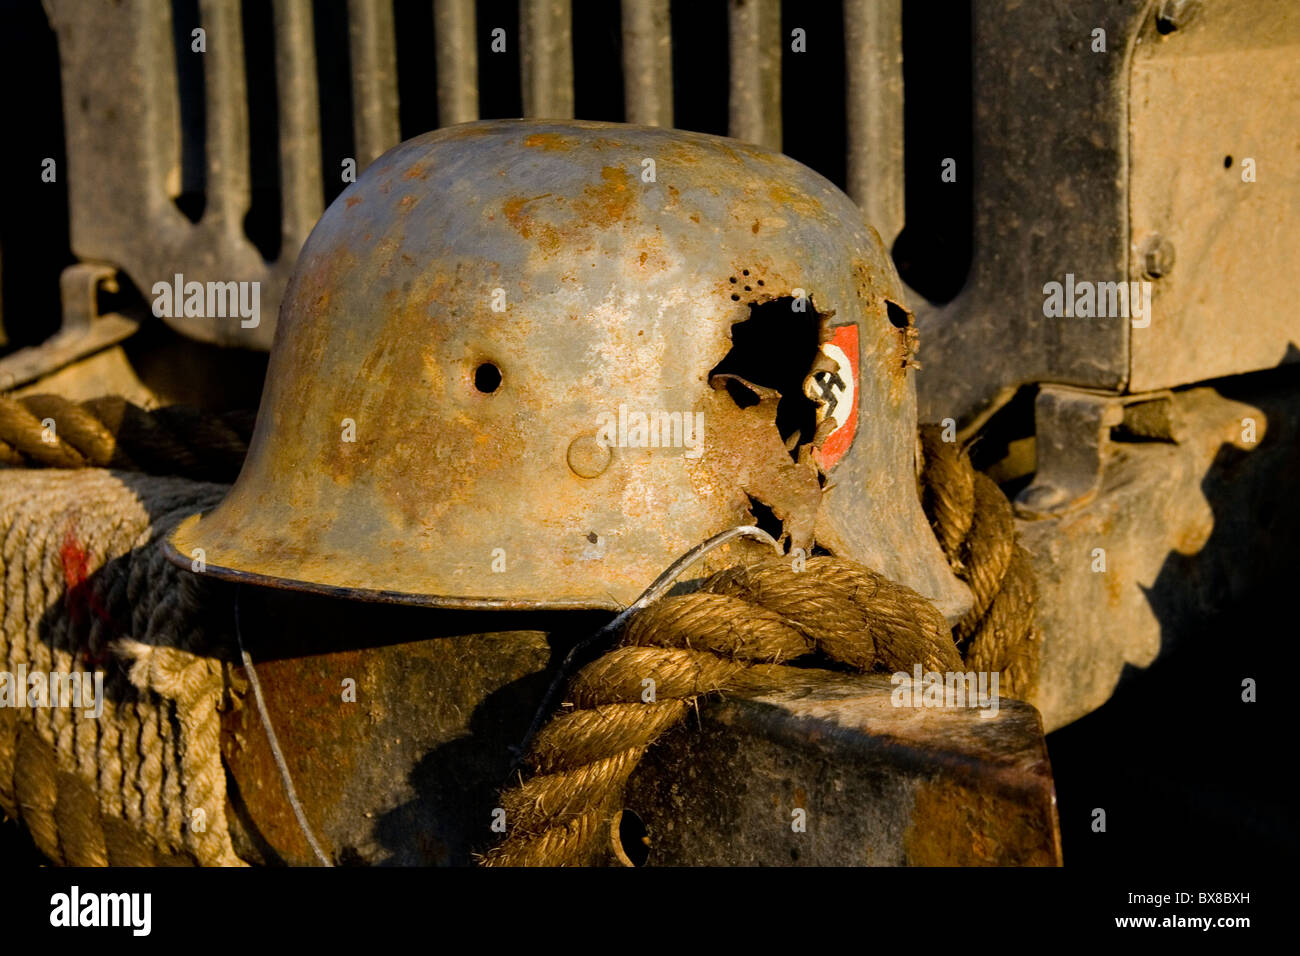 helmet with swastika from the Second World War - Stock Image